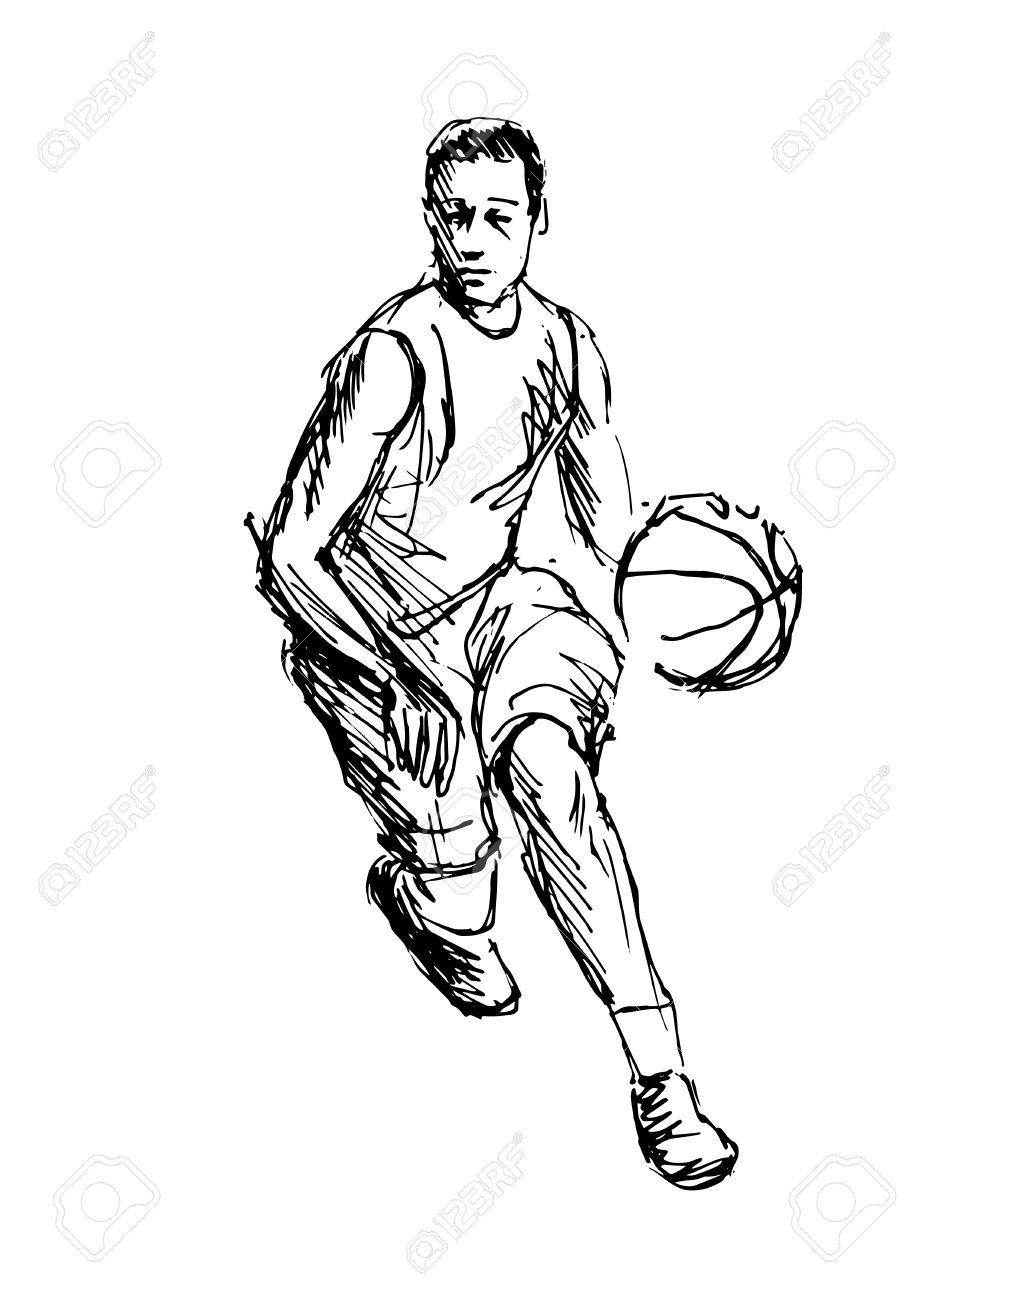 1029x1300 Hand Sketch Basketball Player Vector Illustration Royalty Free